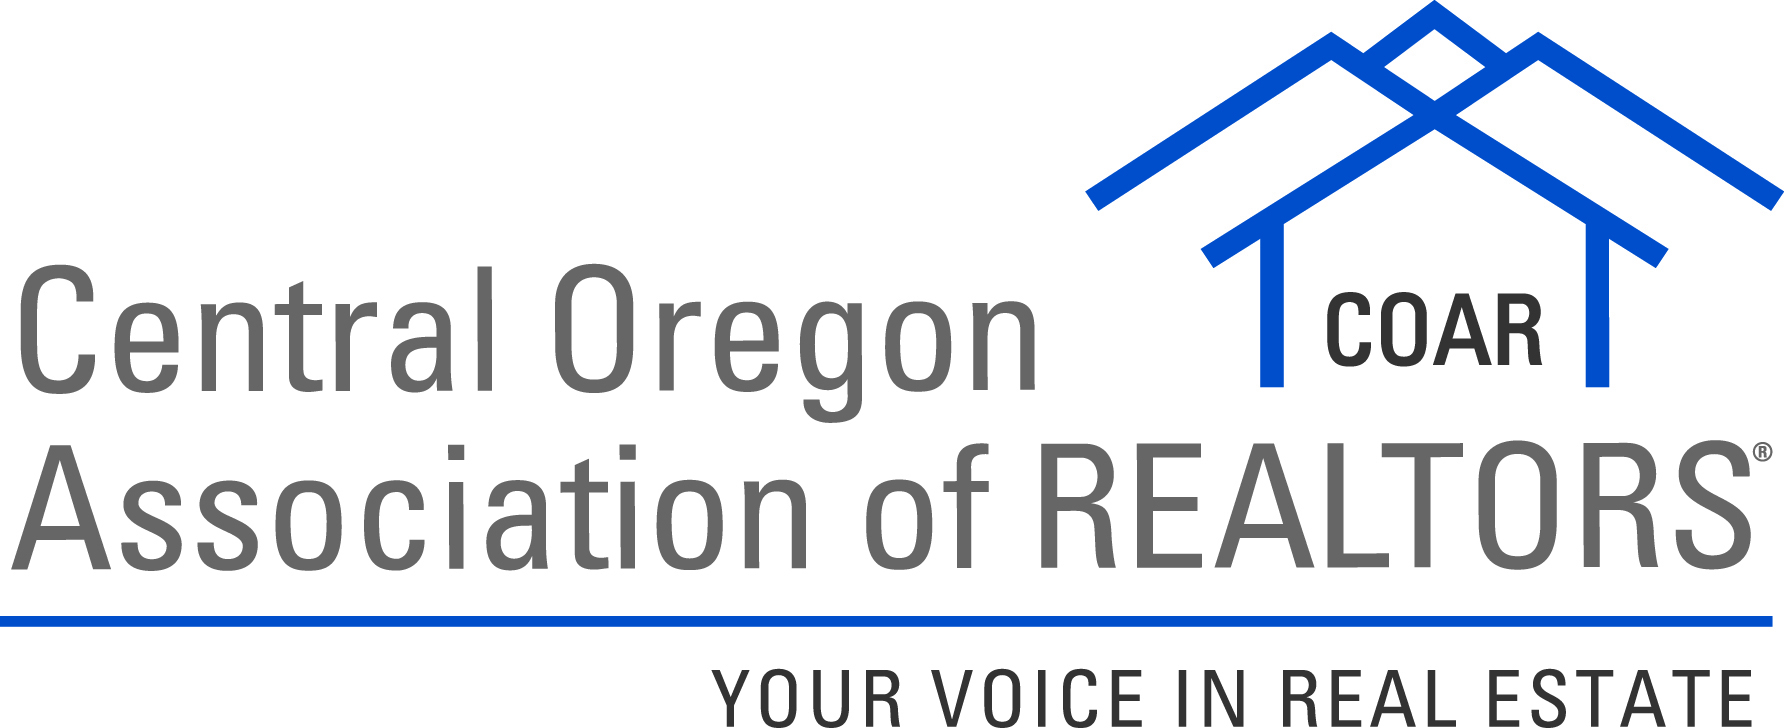 Central Oregon Association of REALTORS®